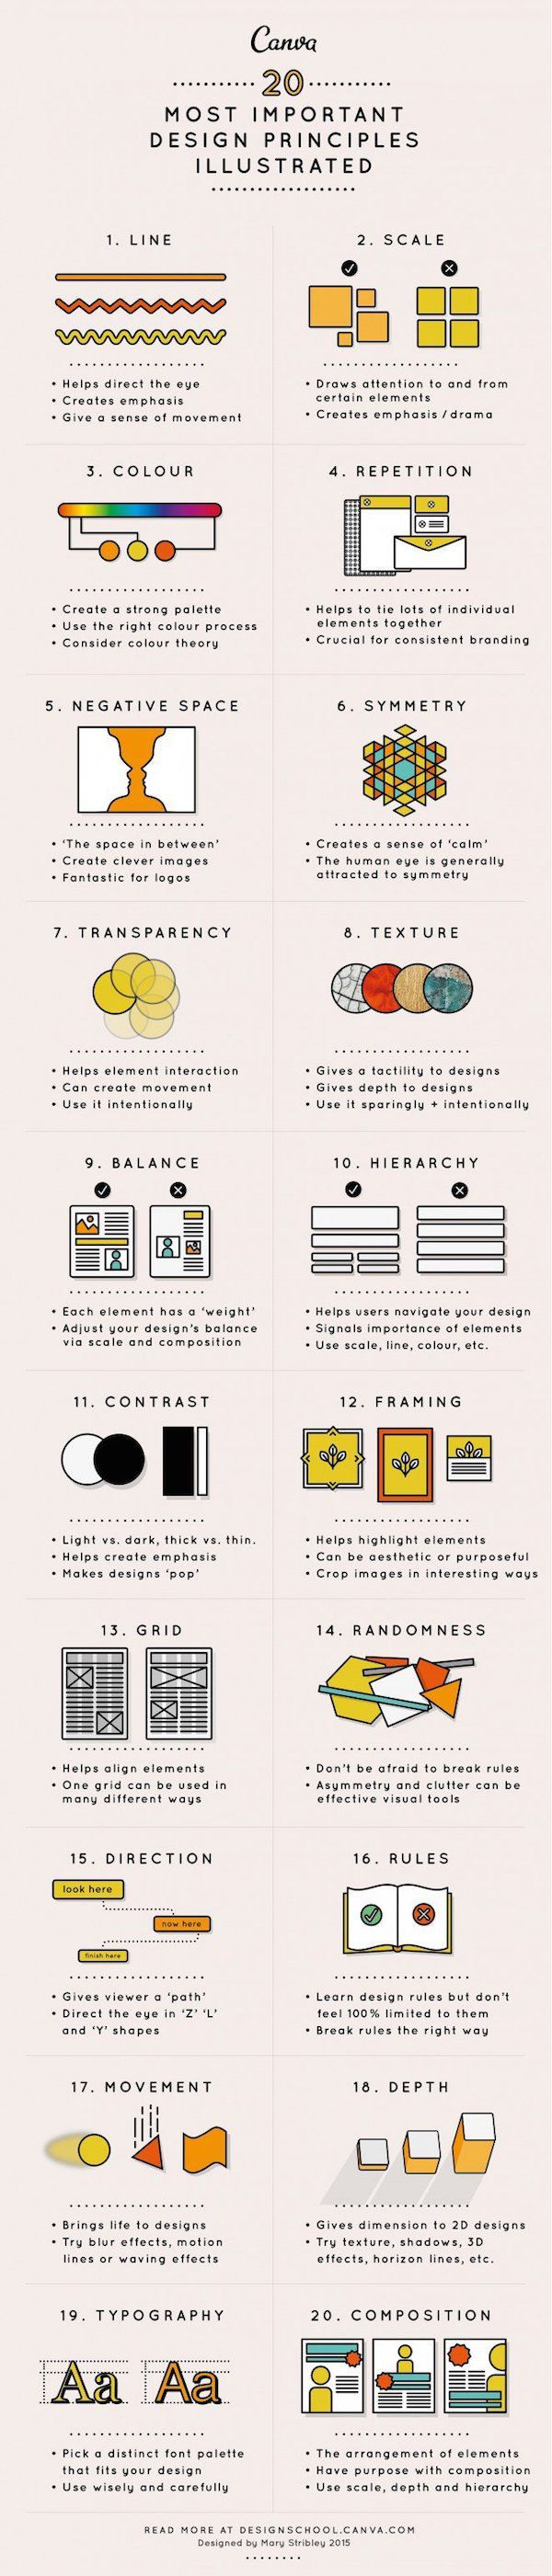 Business infographic & data visualisation Graphic Designers: Cheat Sheets That Simplify Design Elements, Print Terms, More… Infographic Description Graphic Designers: Cheat Sheets That Simplify Design Elements, Print Terms, More… – Infographic Source – - #Business